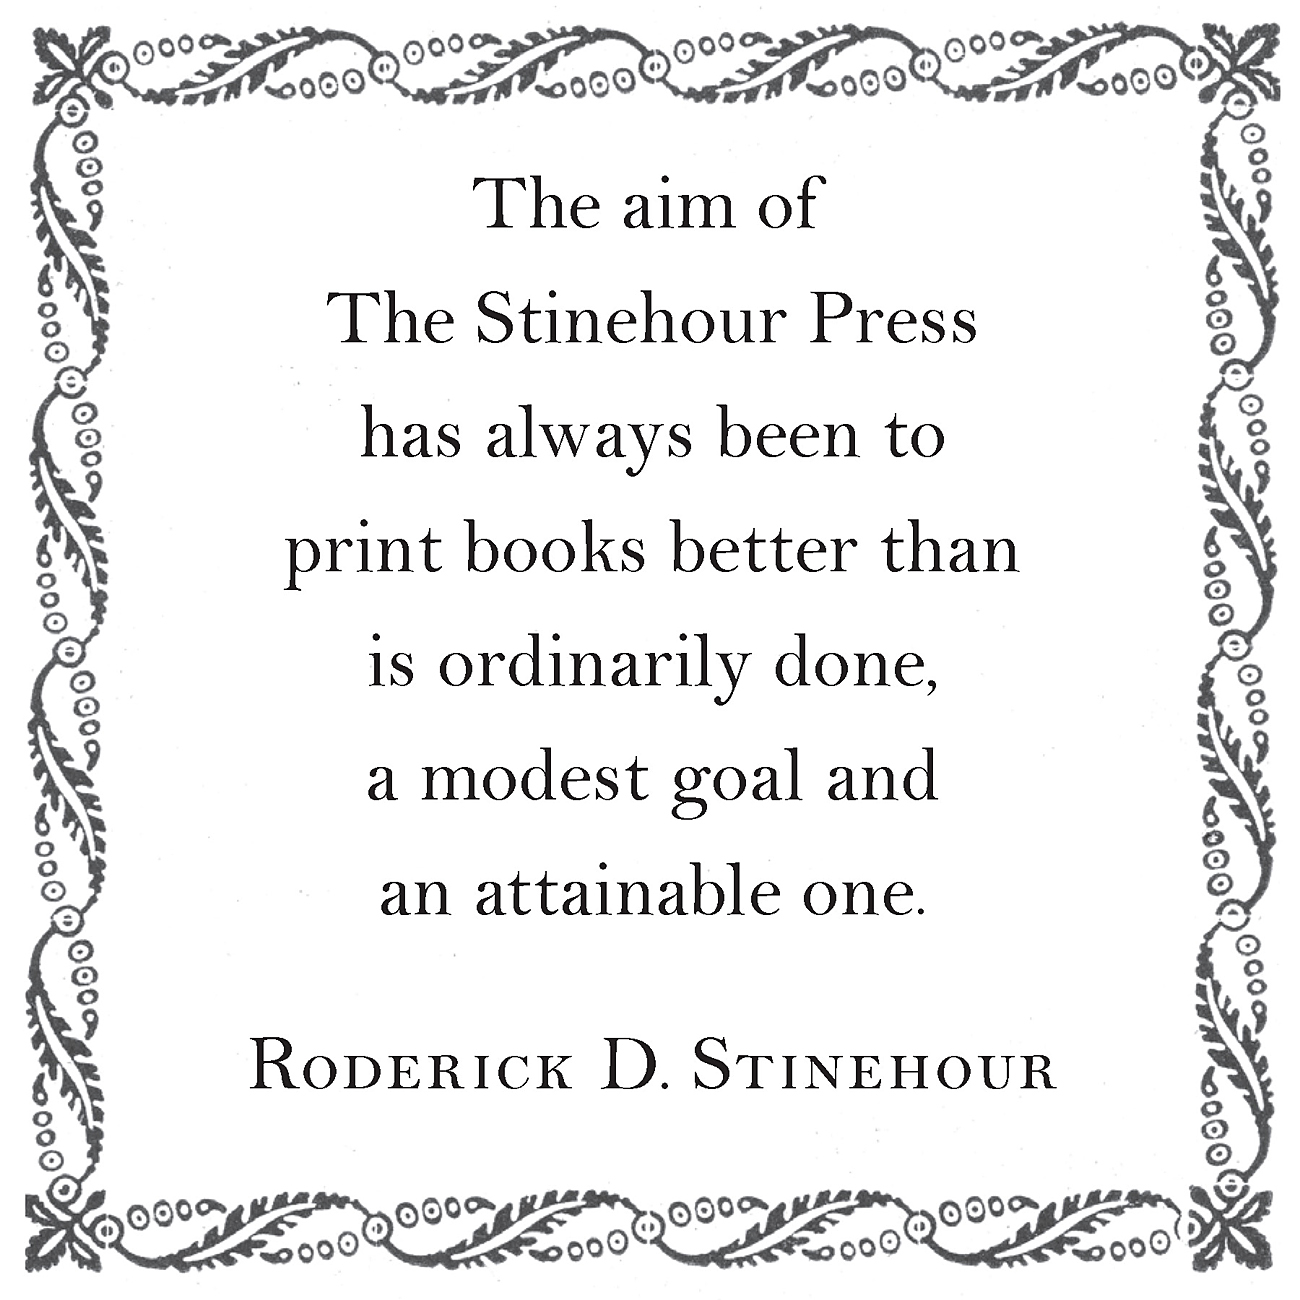 Items from the archives of  Roderick Stinehour, The Stinehour Press and The Meriden Gravure Company can be seen   here   .